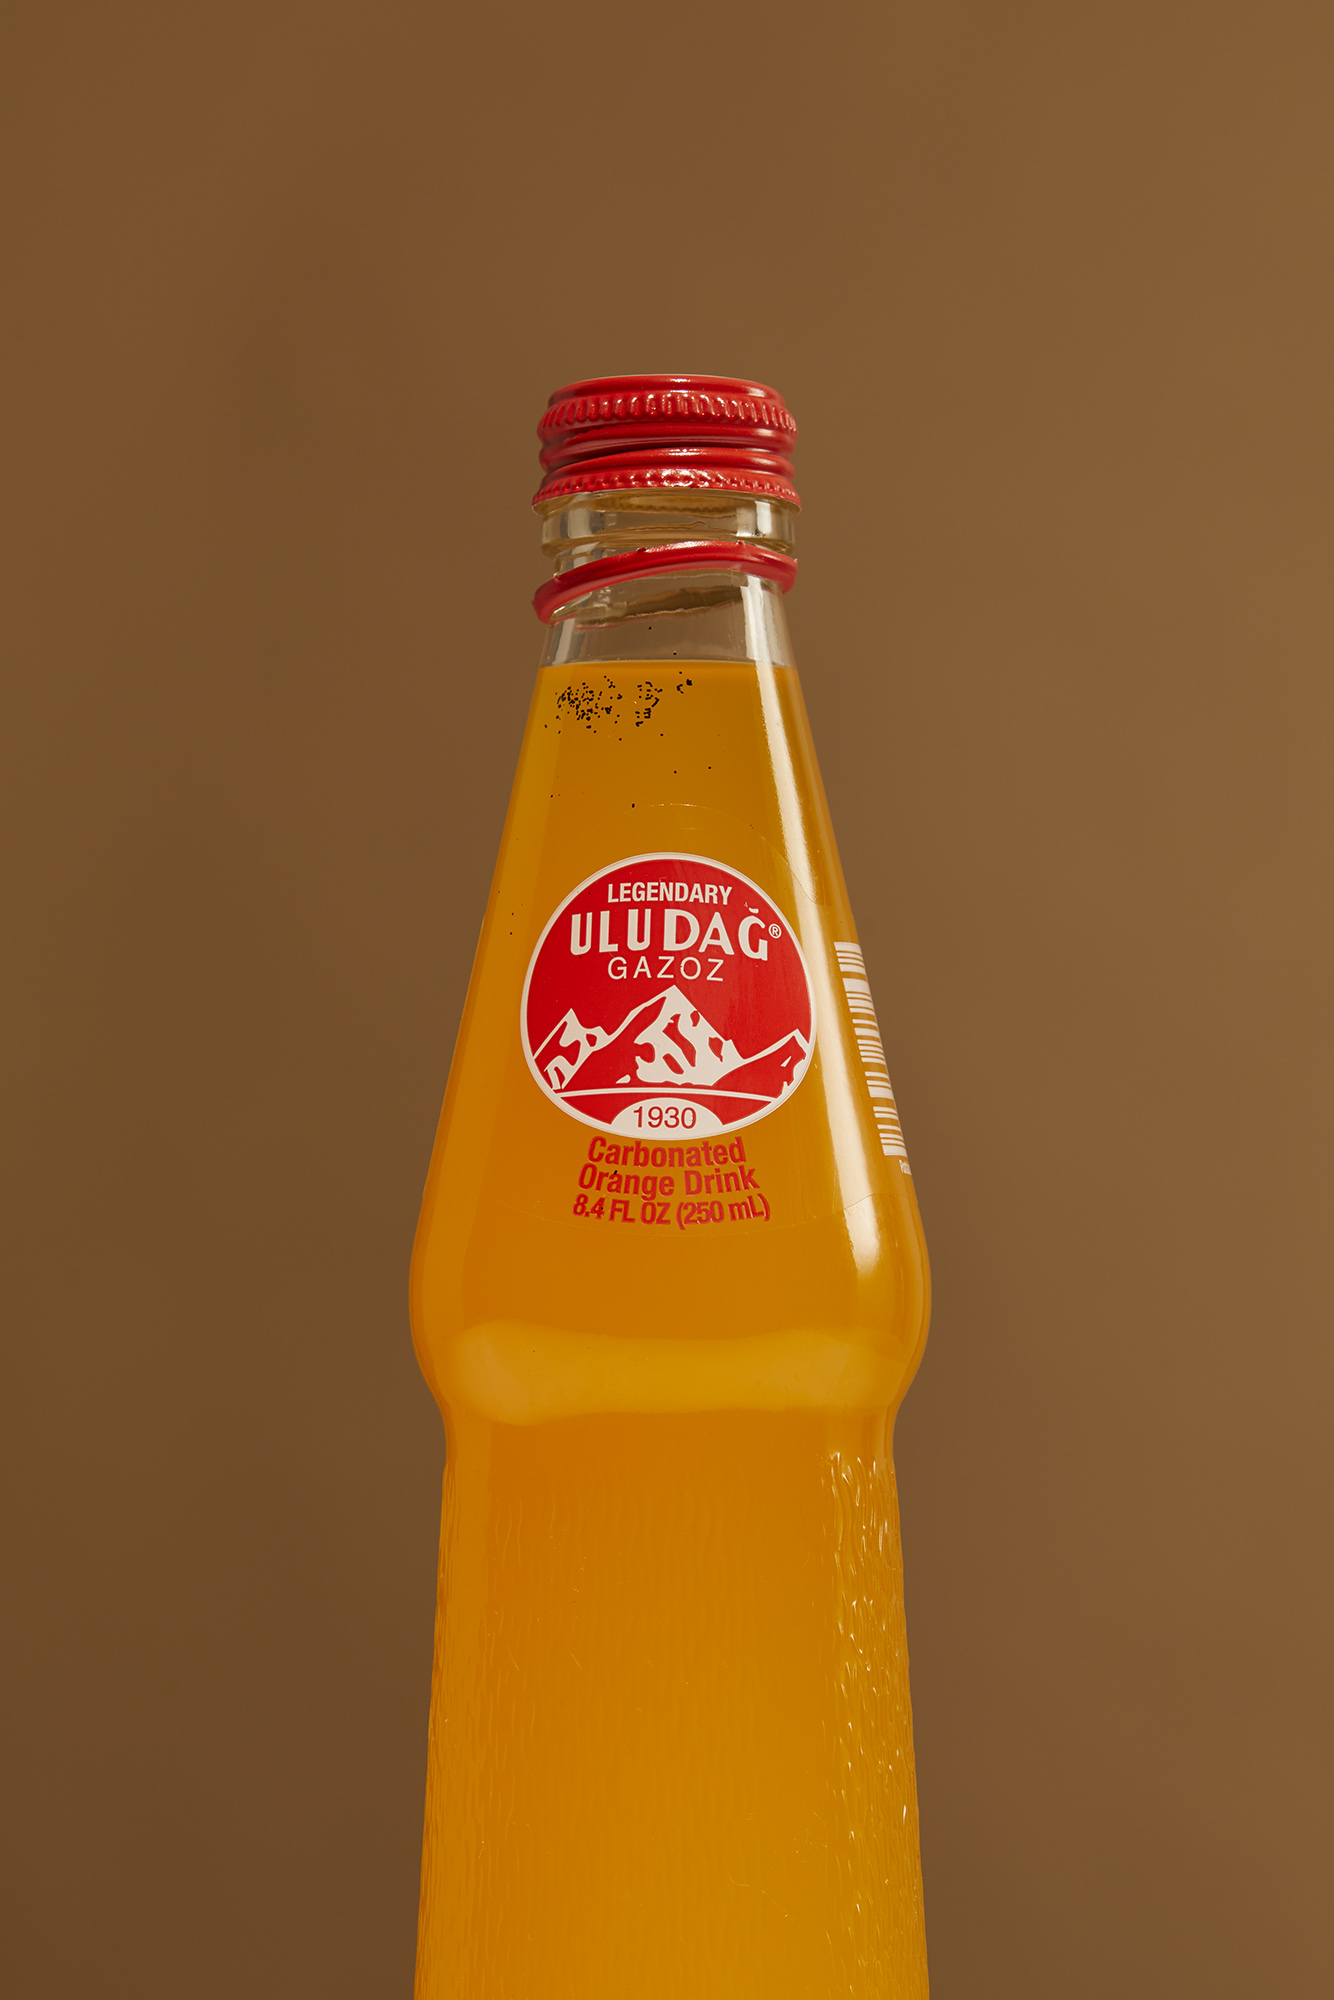 Still Life picture of a bottle of orange drink